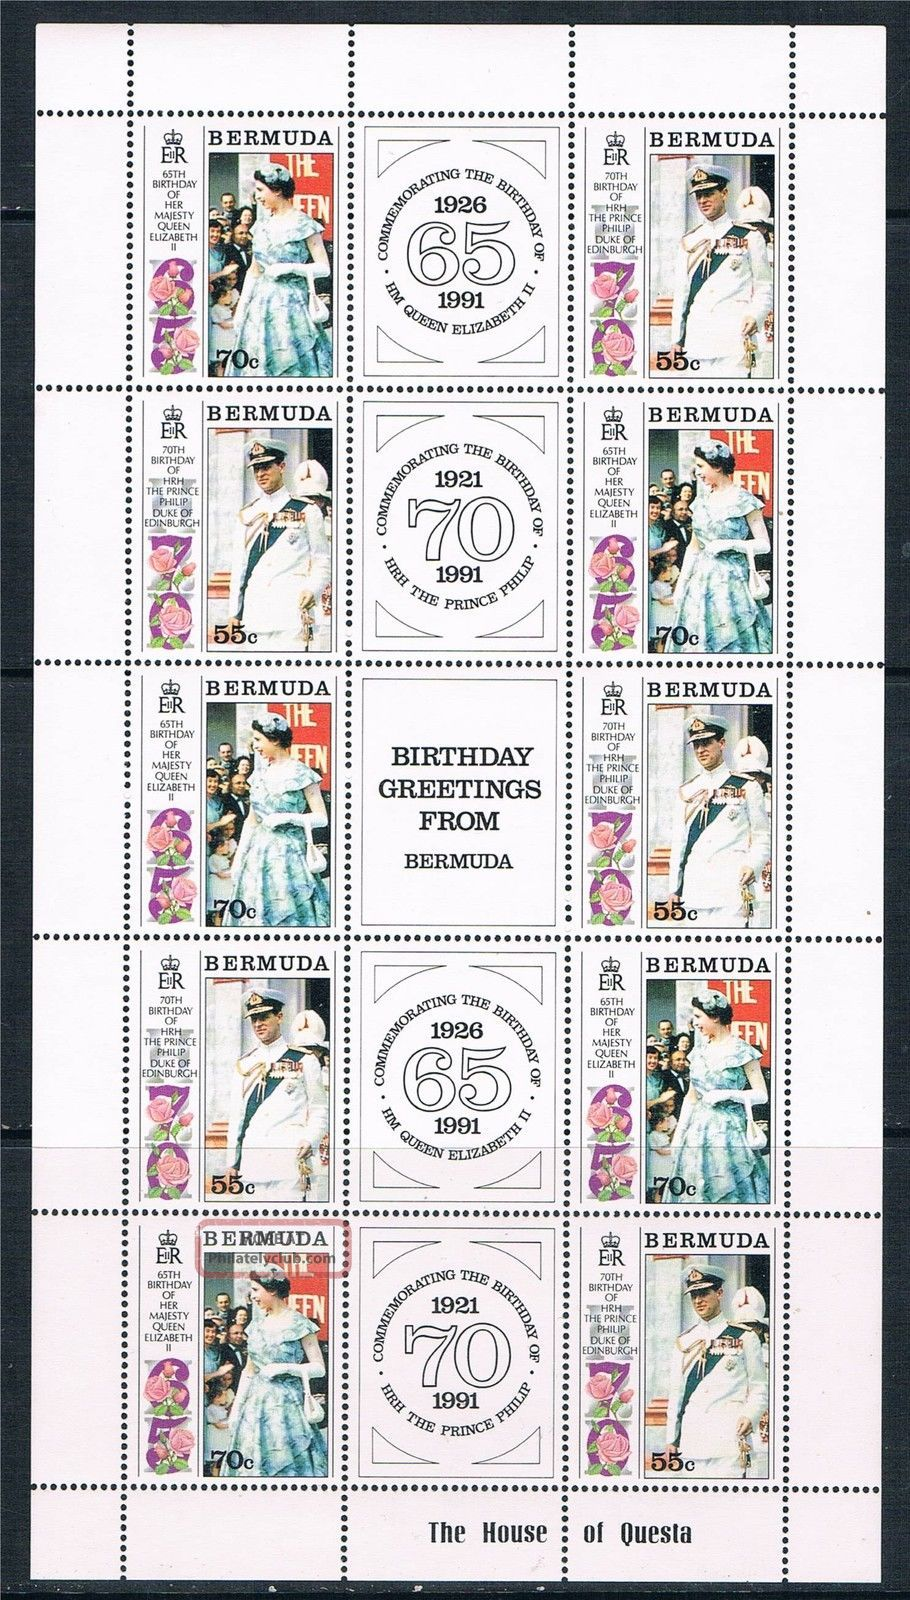 Bermuda 1991 Royal Birthdays Complete Sheet Sg634/5 British Colonies & Territories photo